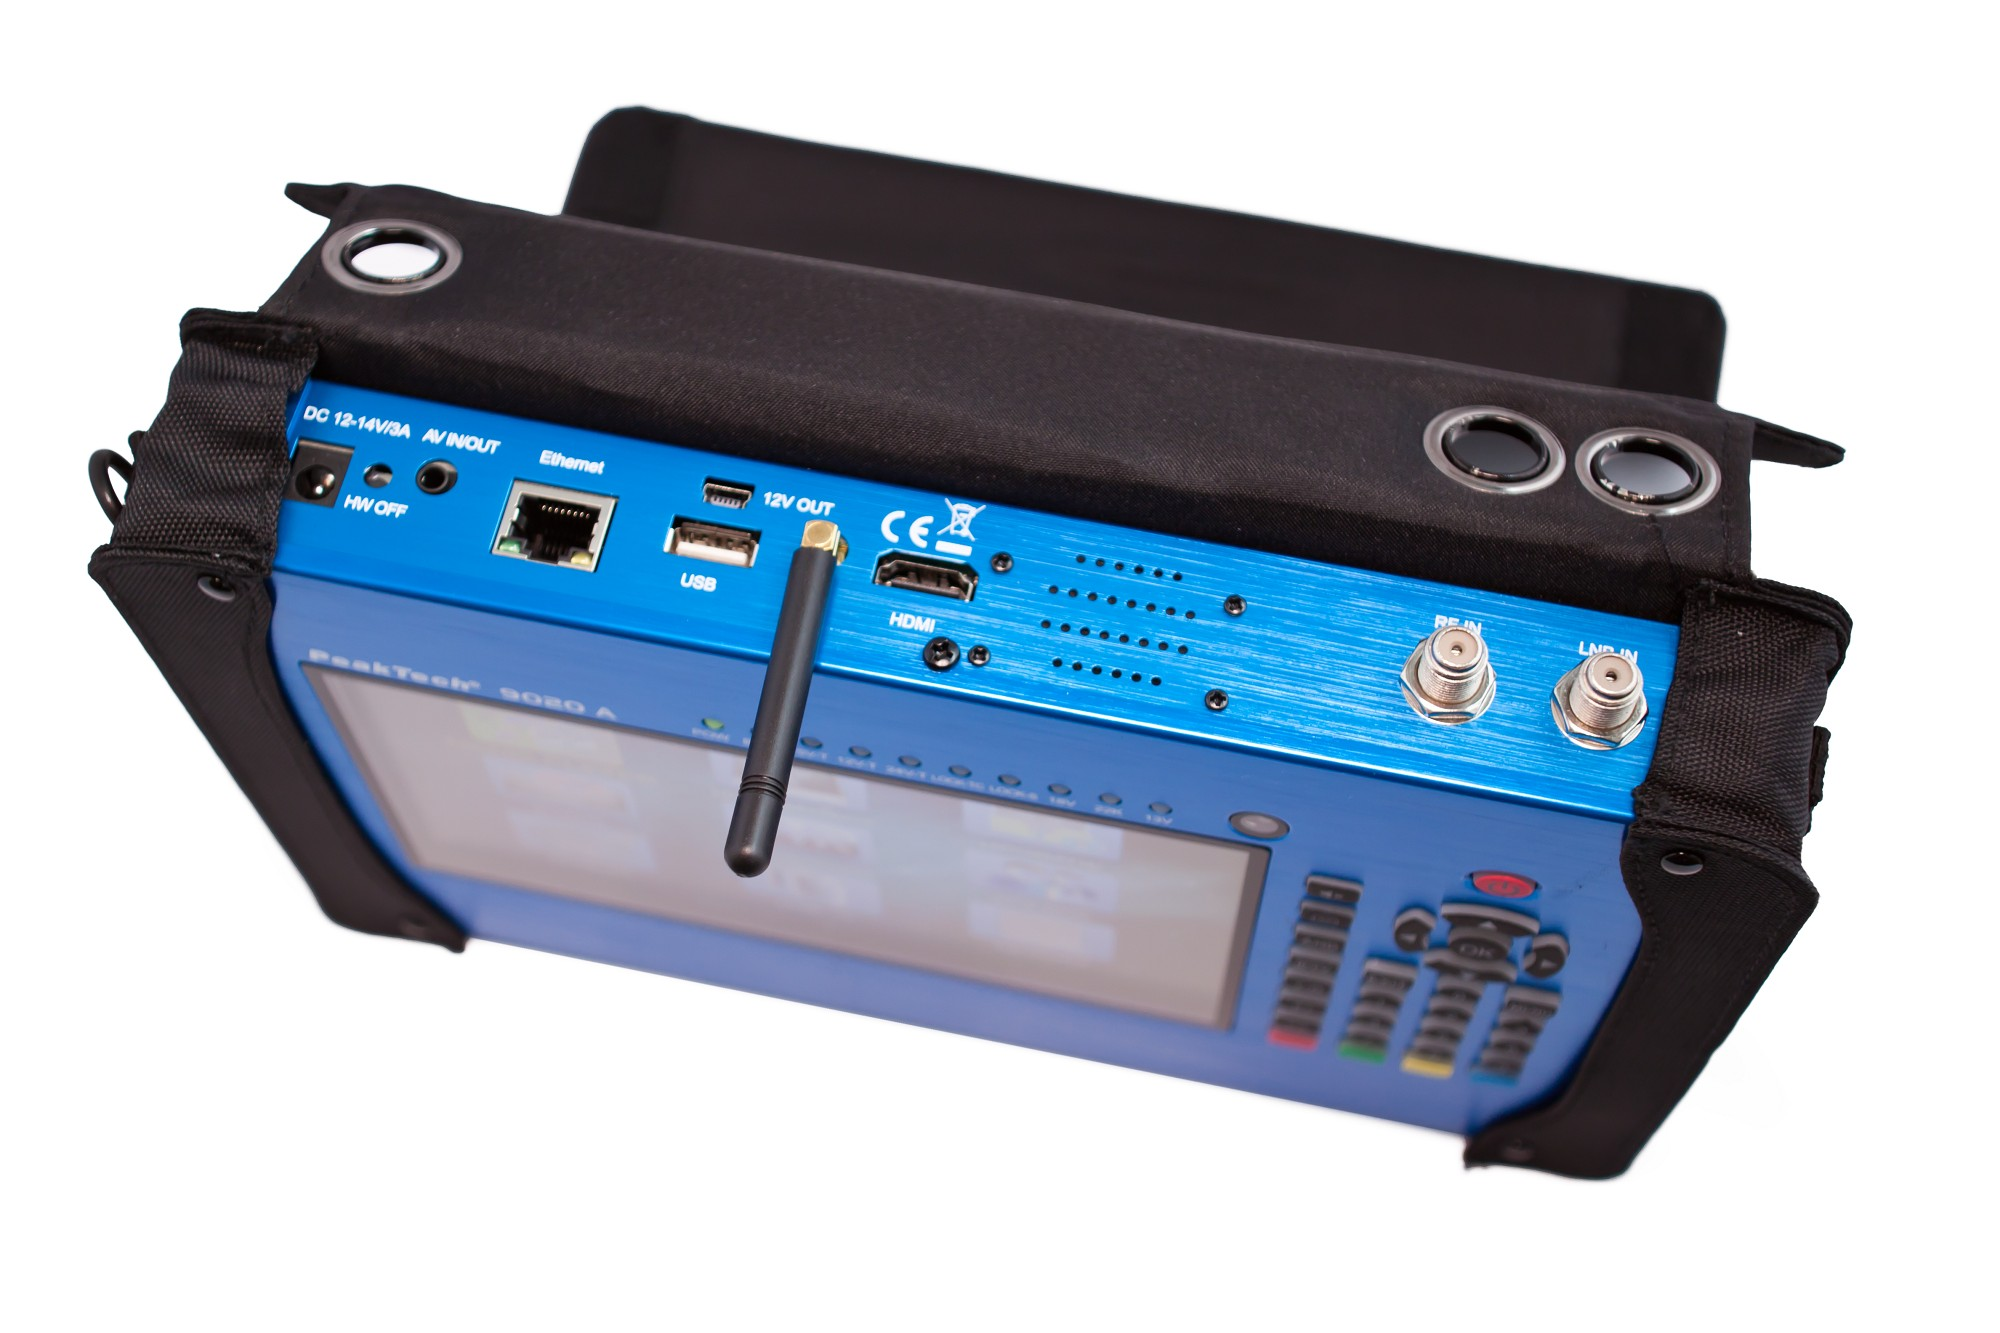 """«PeakTech® P 9020 A» DVB-C / C2, S / S2, T / T2 meter with 7 """"display, codec, WiFi / LAN and Ci slot"""